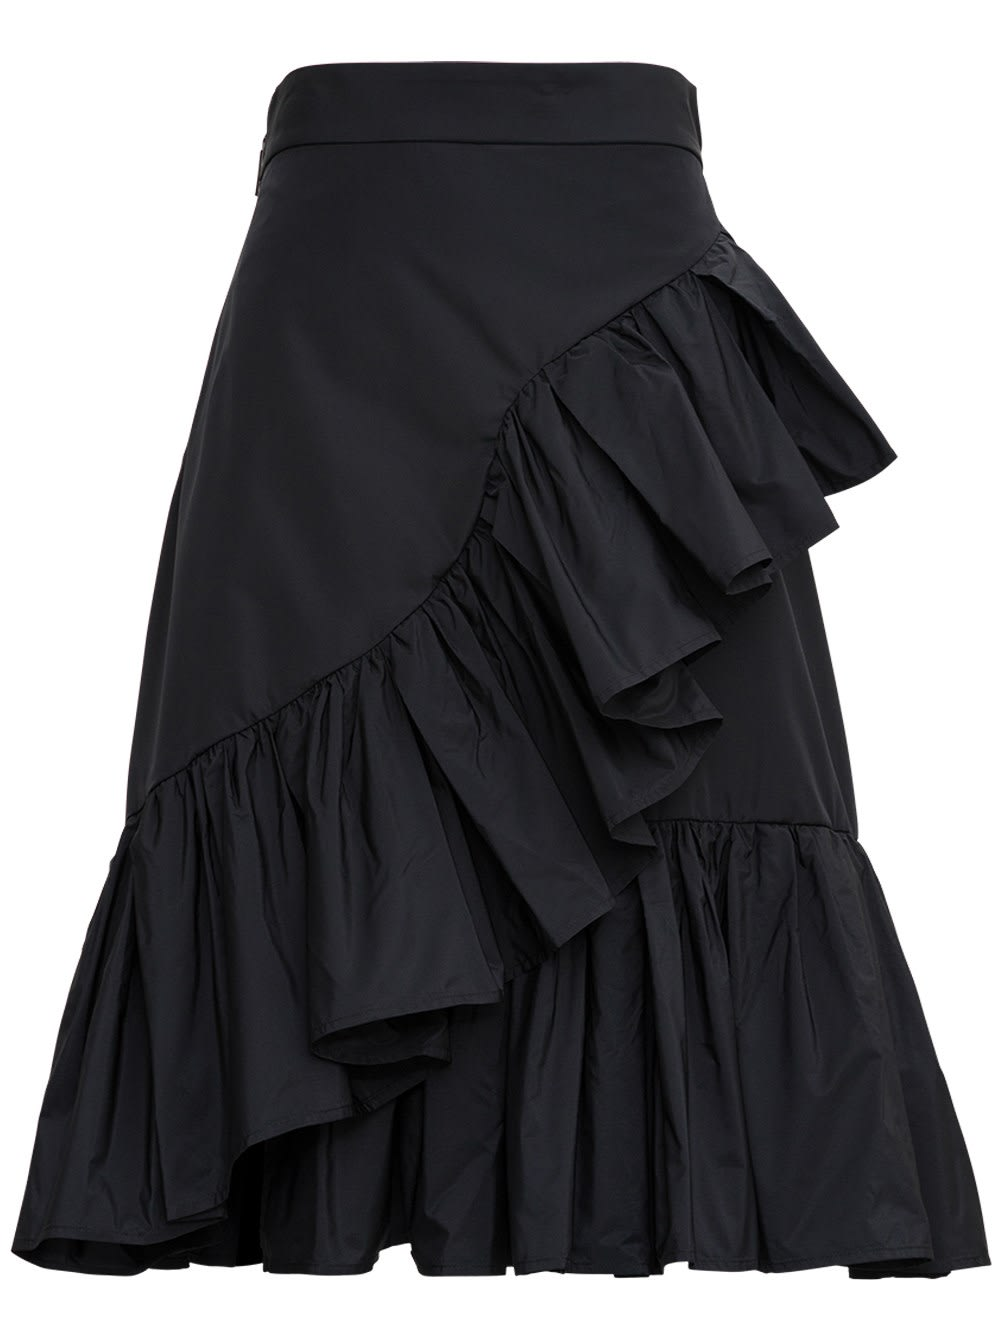 MSGM Black Skirt With Ruffle Detail